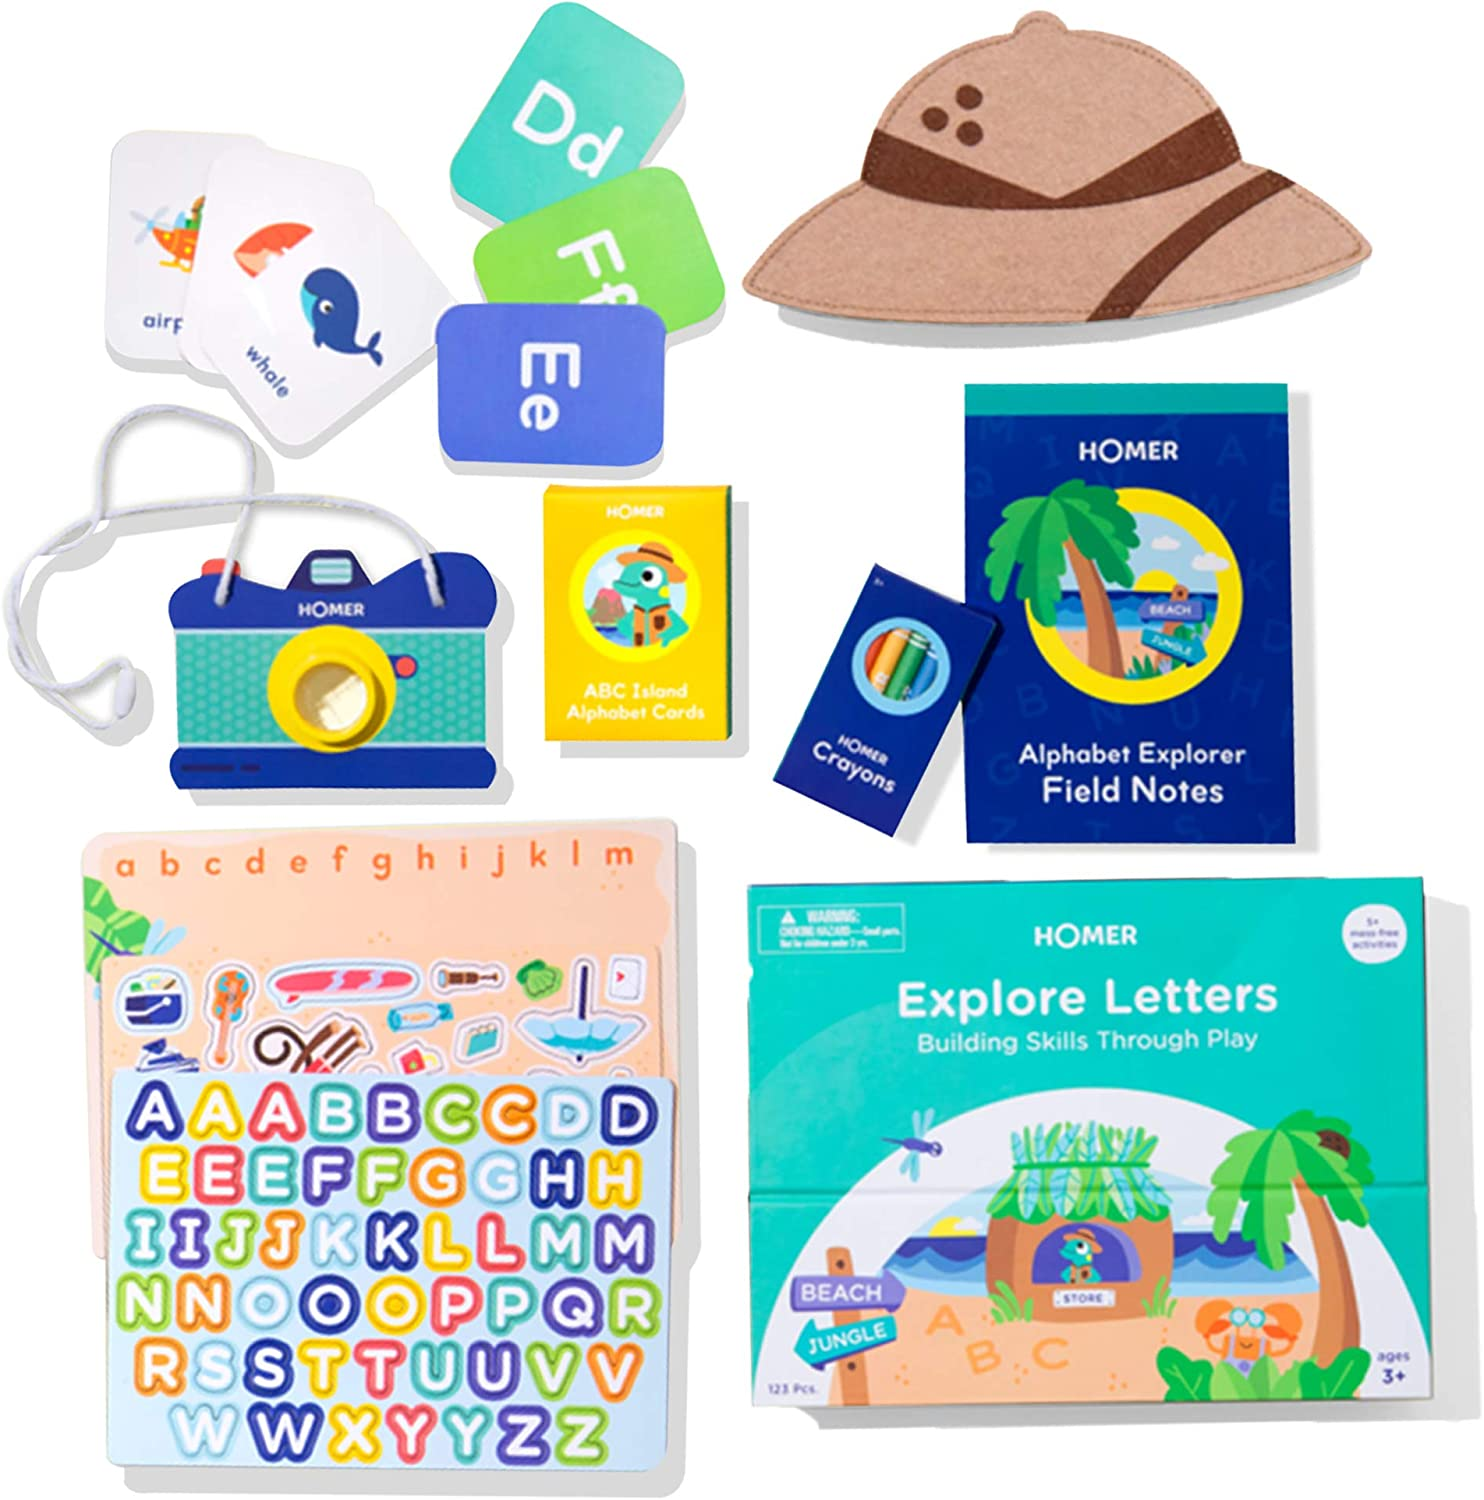 HOMER Charlotte Mall Explore Letters Kit - Learn and ABCs Branded goods the Magneti with Play